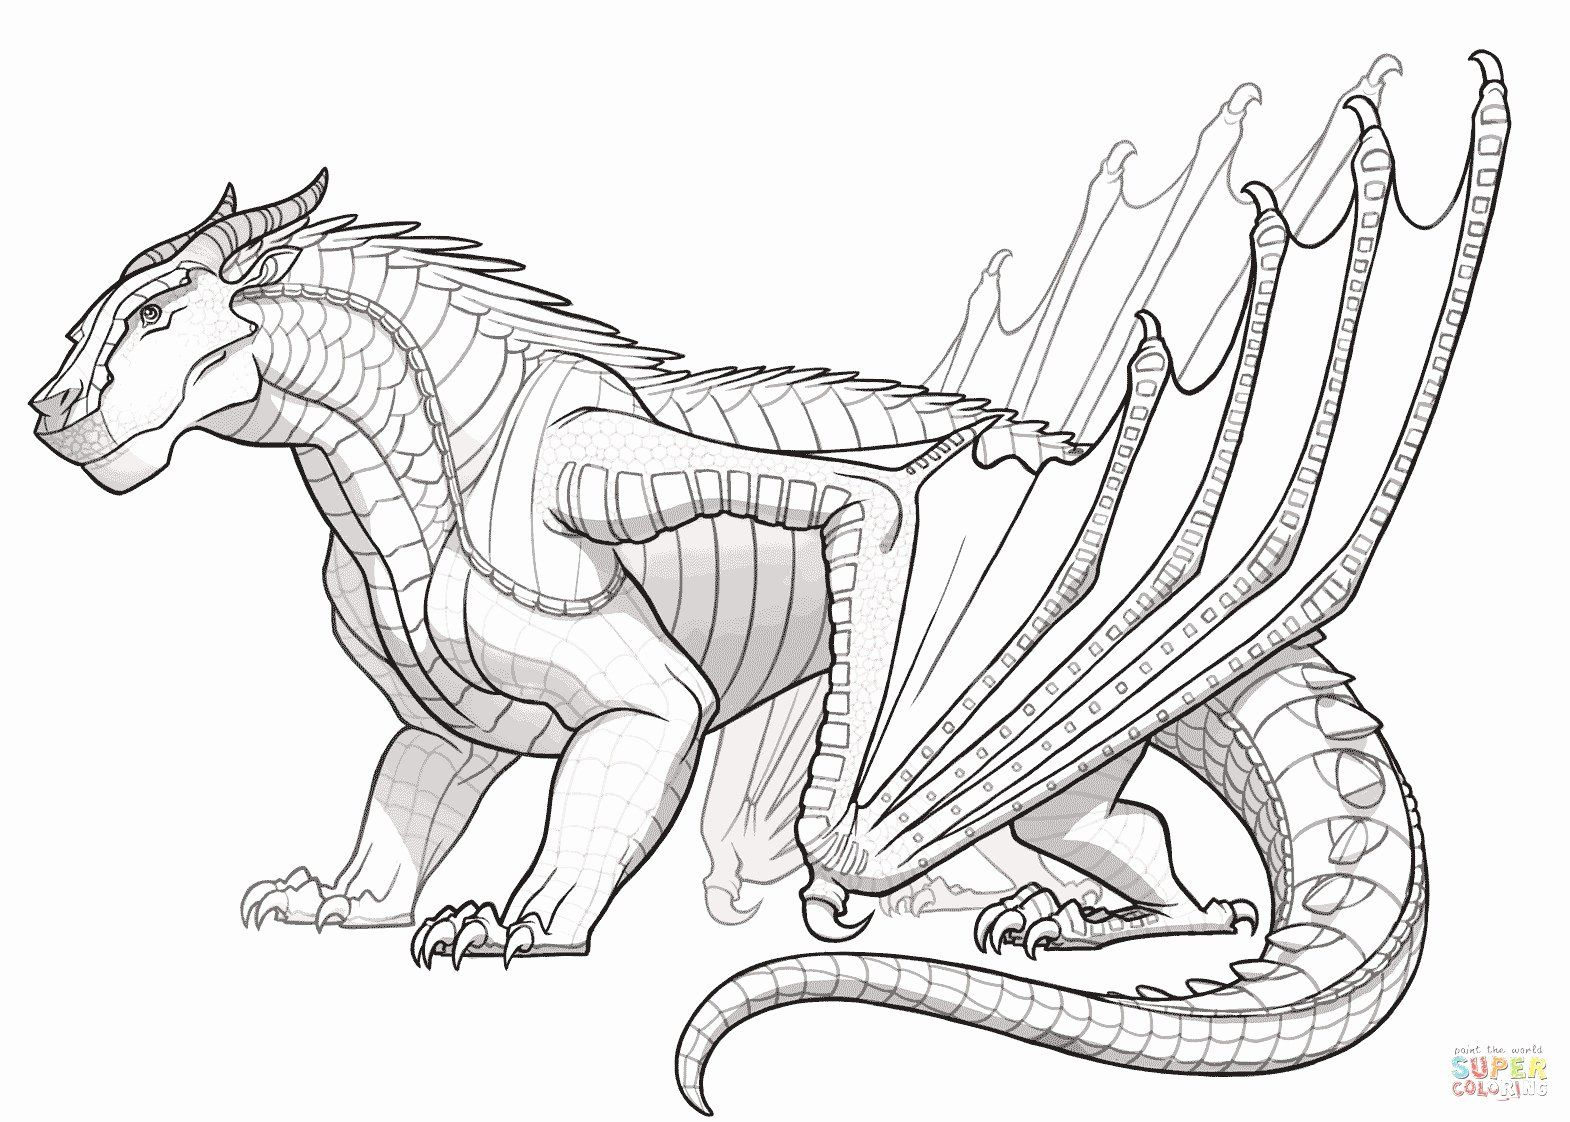 Chibi Animal Coloring Pages Inspirational Hard Dog Coloring Pages Inspirational Hard Dog Zoo Animal Coloring Pages Dragon Coloring Page Pokemon Coloring Pages